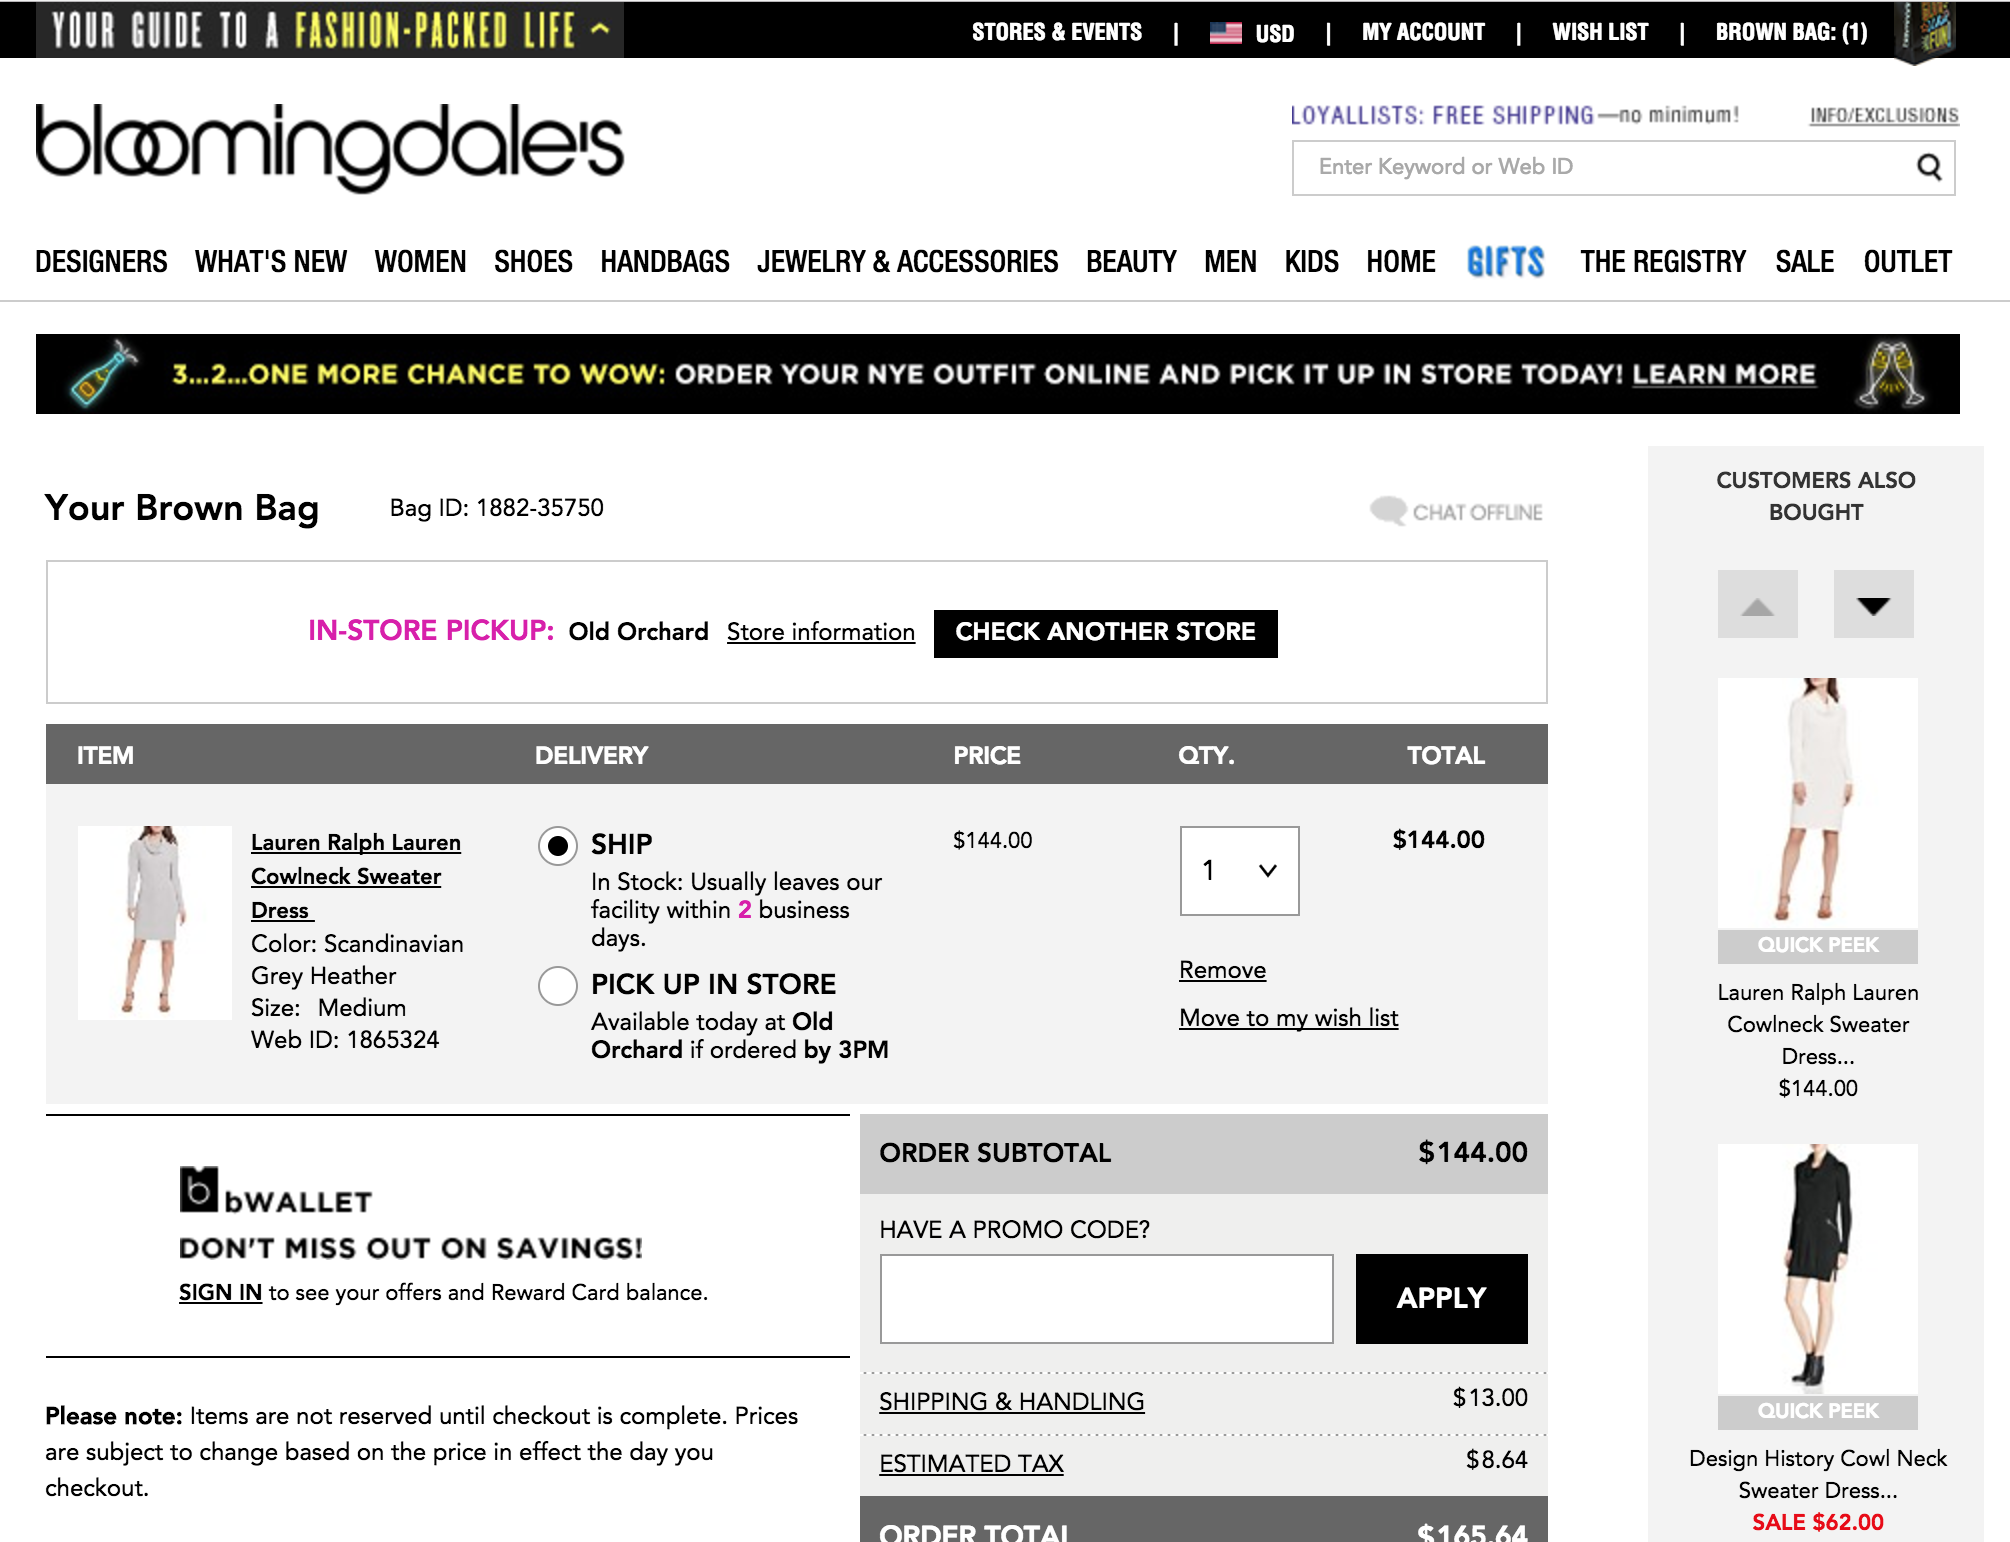 Bloomingdales coupon code field in shopping cart